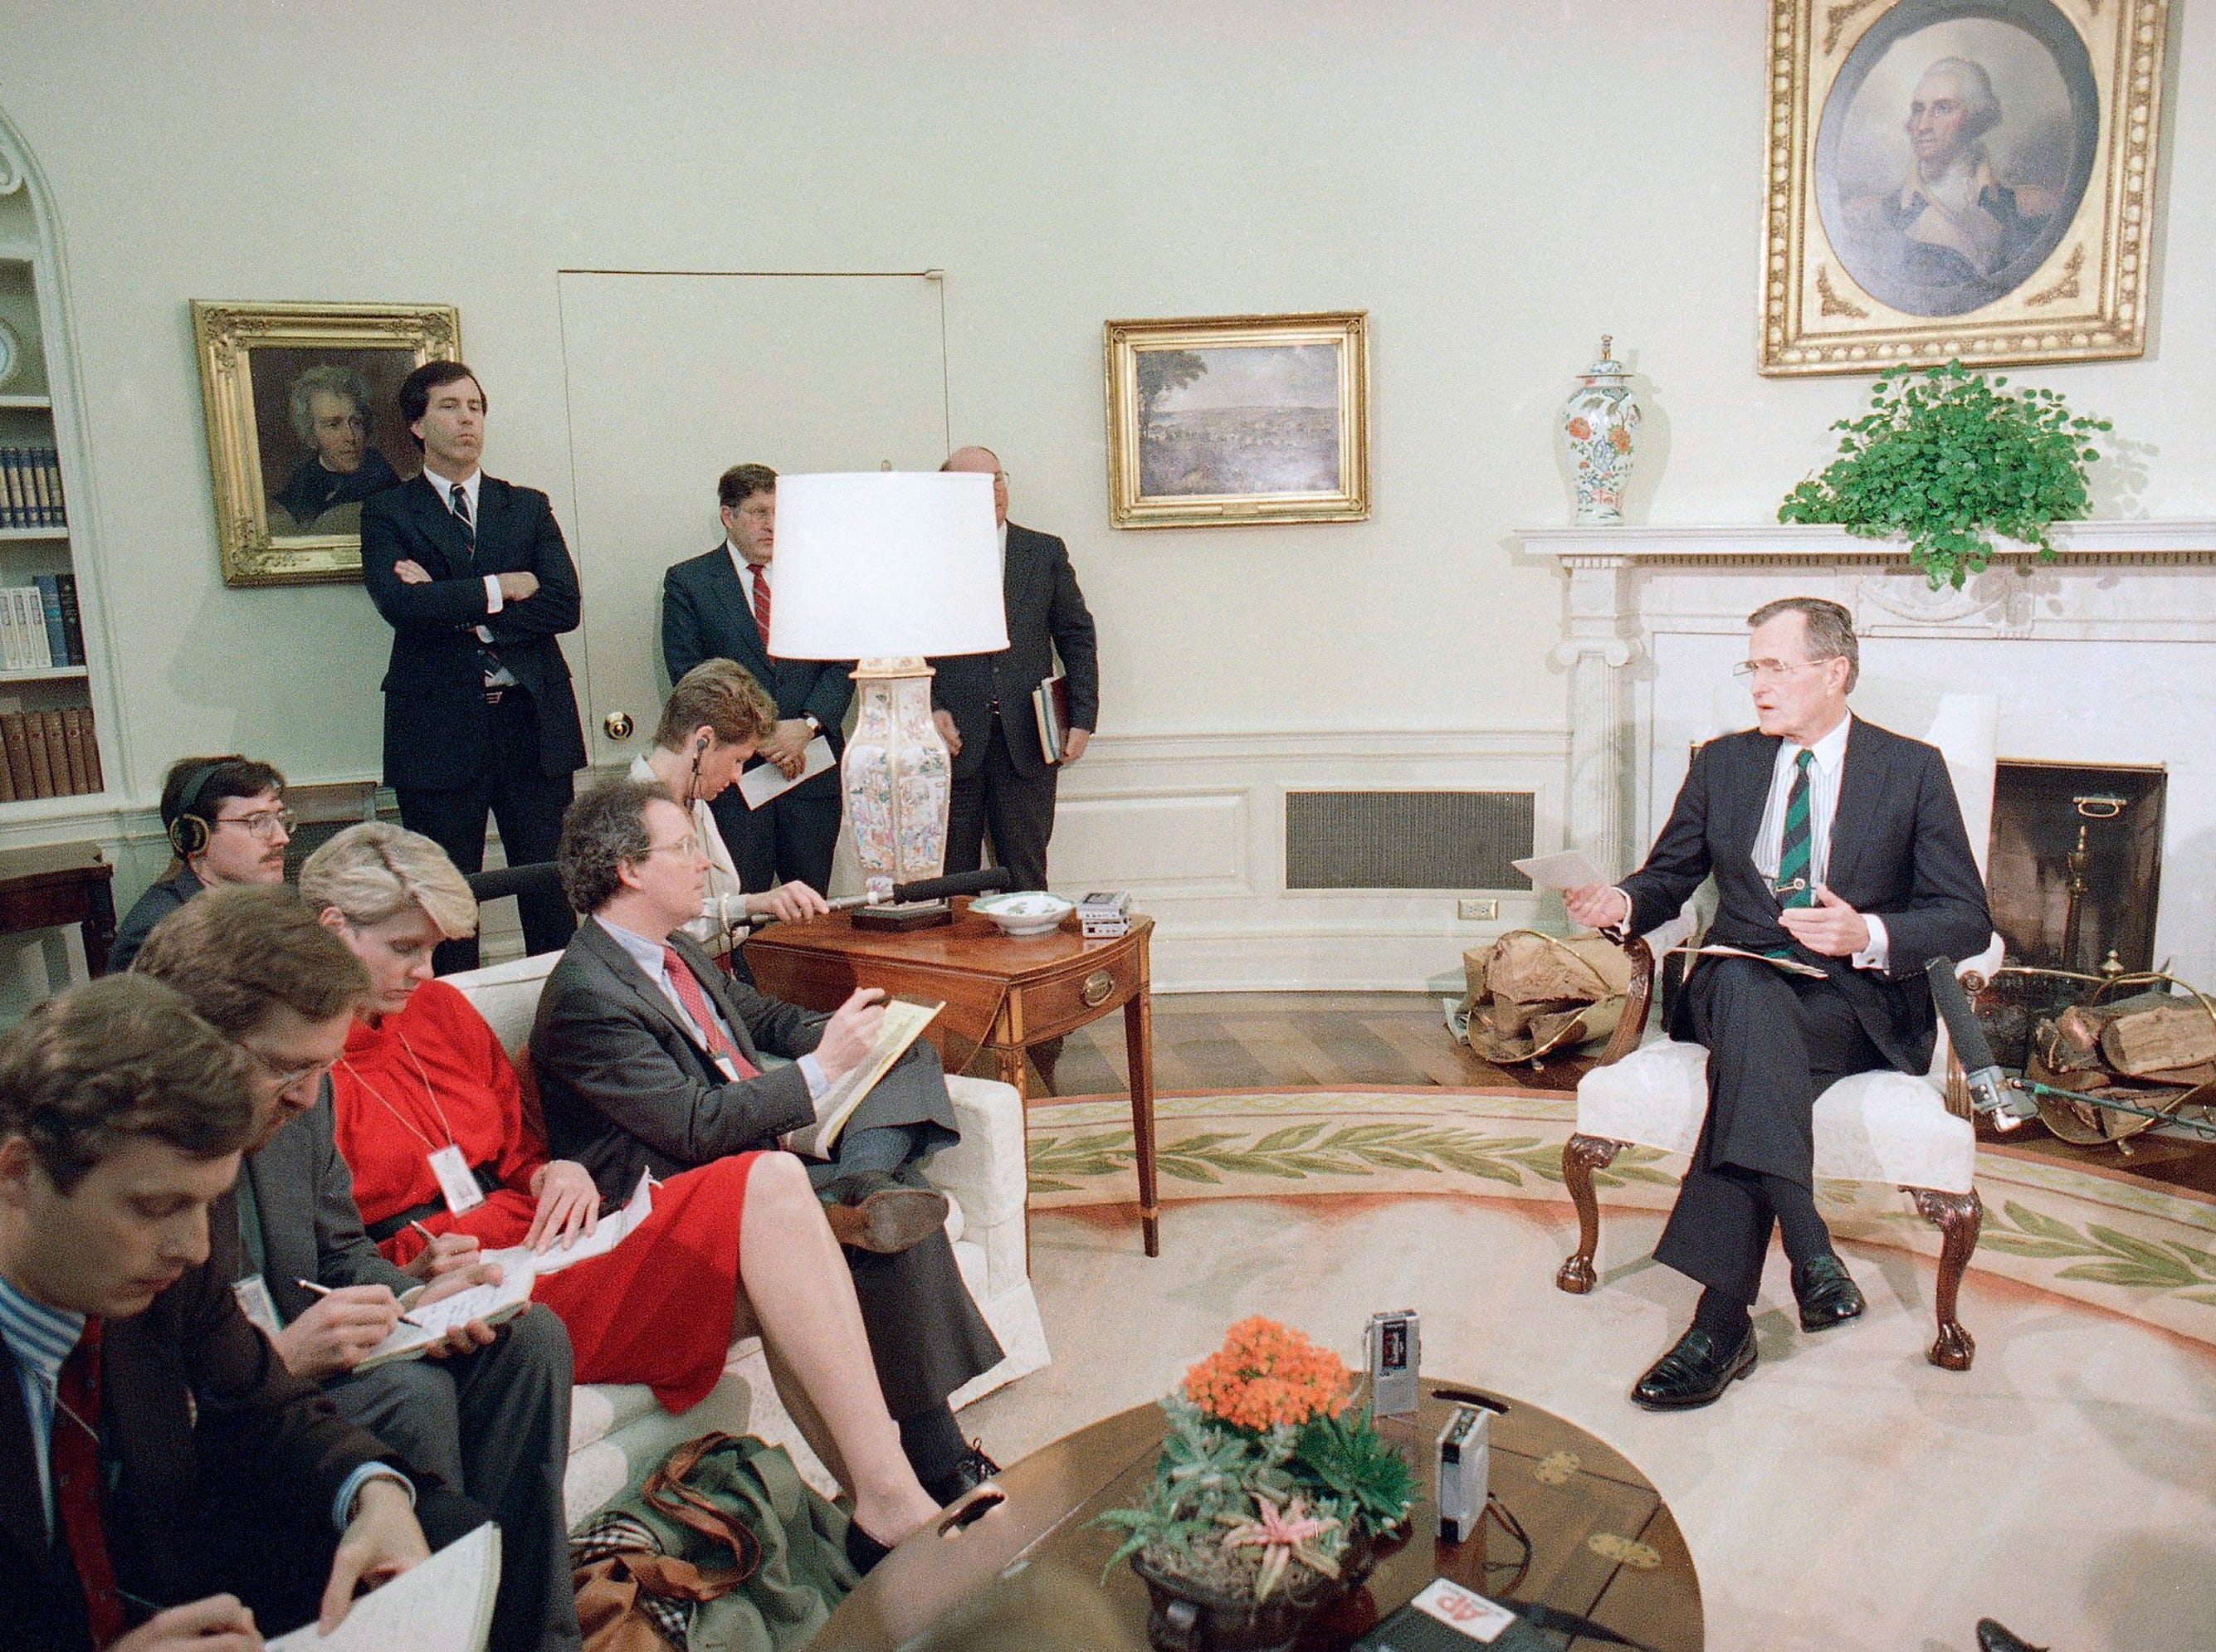 Pres. George H. W. Bush, right, meets with unidentified reporters in the Oval Office of the White House, Thursday, Feb. 17, 1989, Washington, D.C. Bush vowed to continue helping the Afghan rebels after the Soviet Red Army withdrawal from the war-ravaged Asian nation, but said he prefers a peaceful reconciliation. (AP Photo/Scott Applewhite)